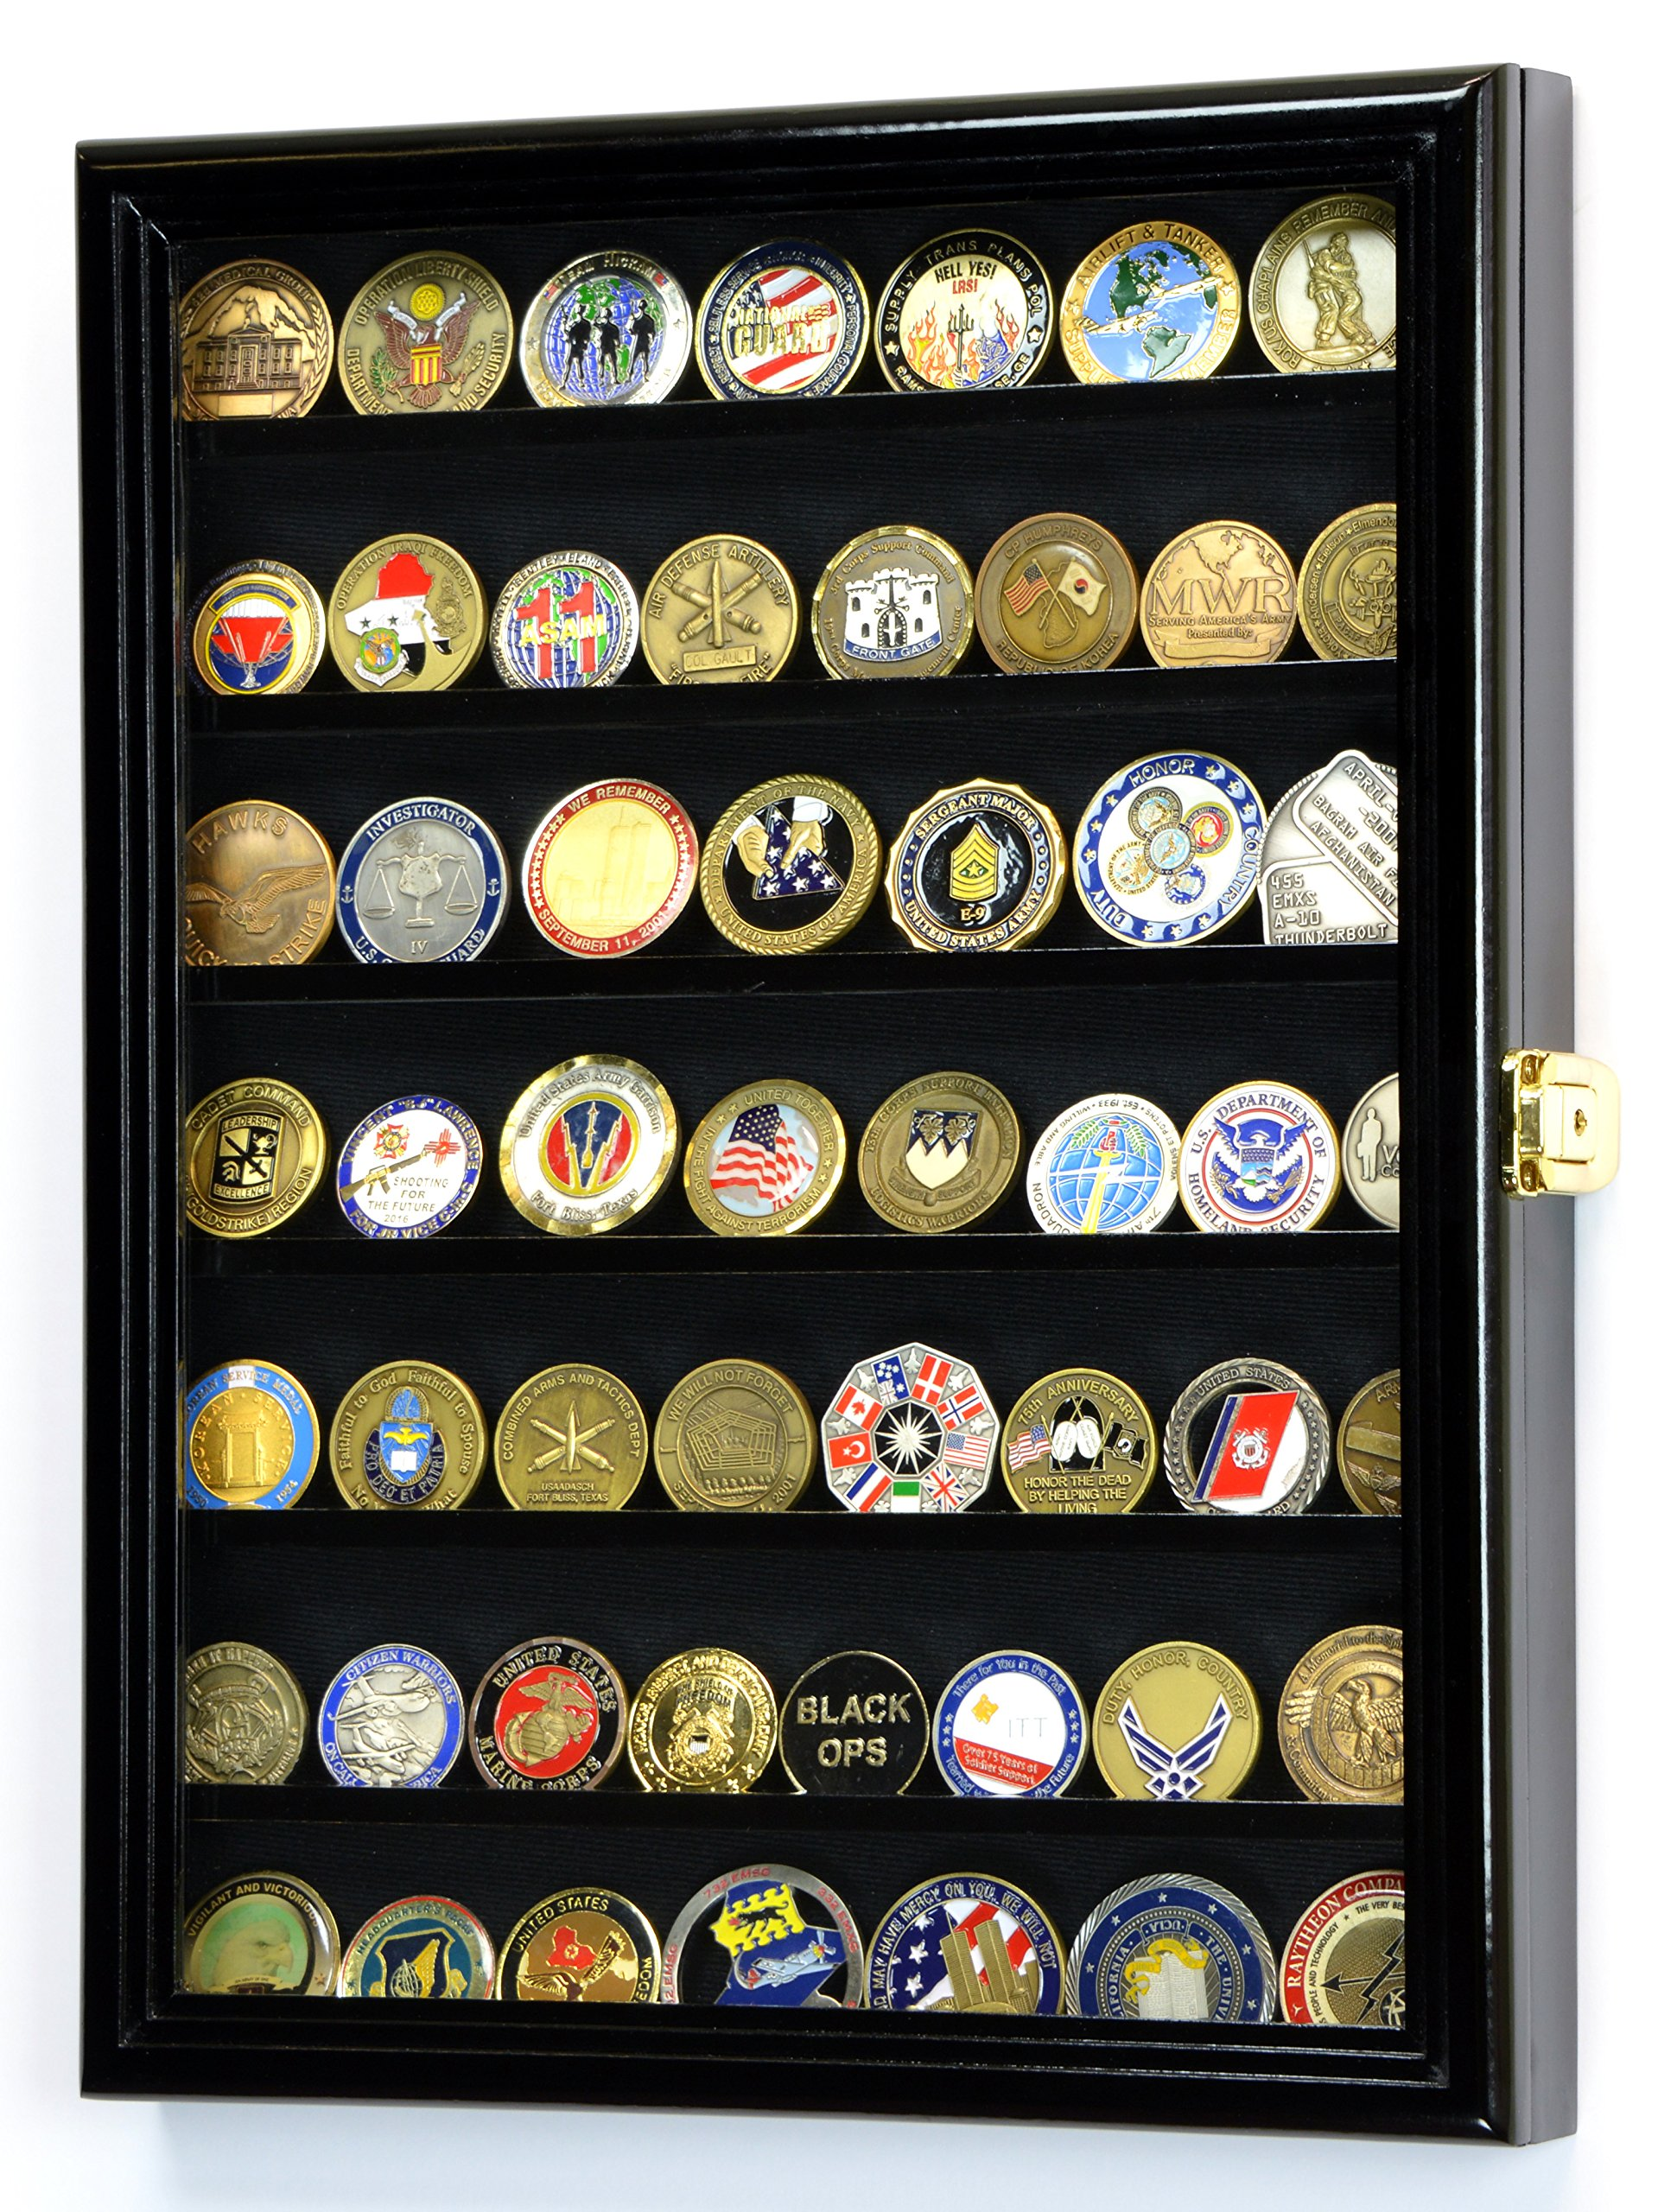 Military Challenge Coin Display Case Cabinet Holder Wall Rack 98% UV Lockable -Black